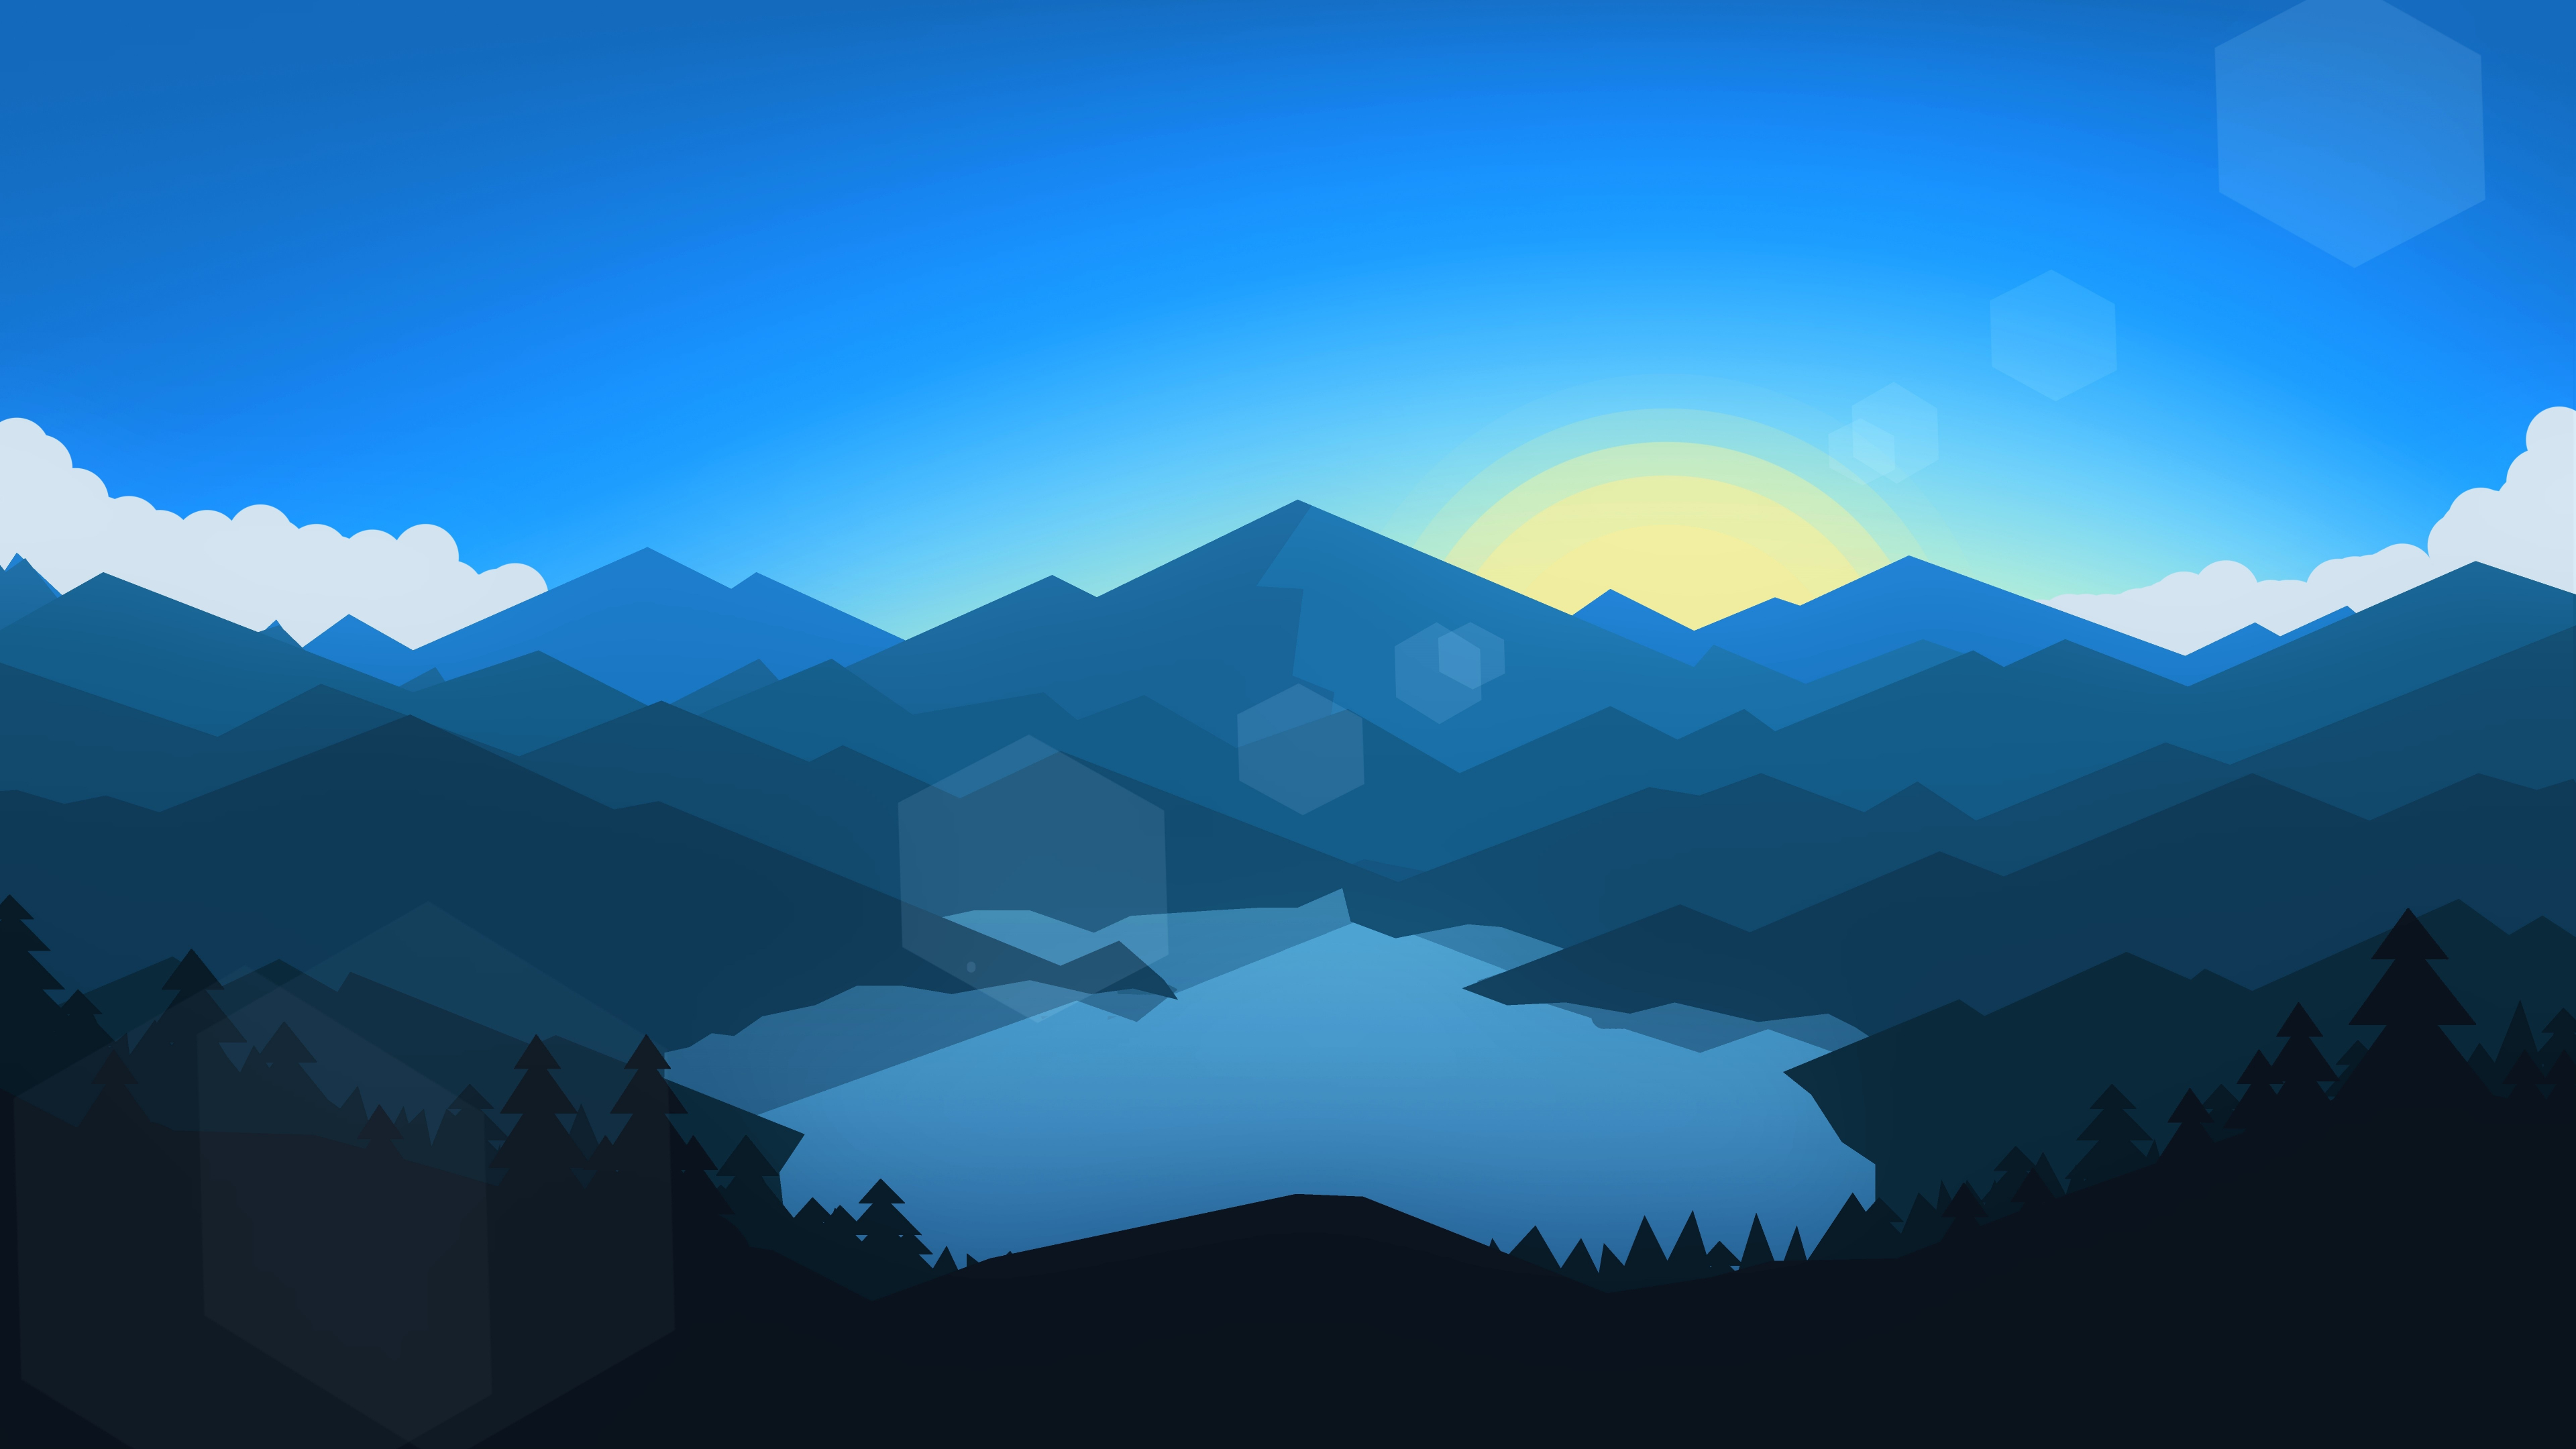 Download 3840x2160 Wallpaper Forest Mountains Sunset Cool